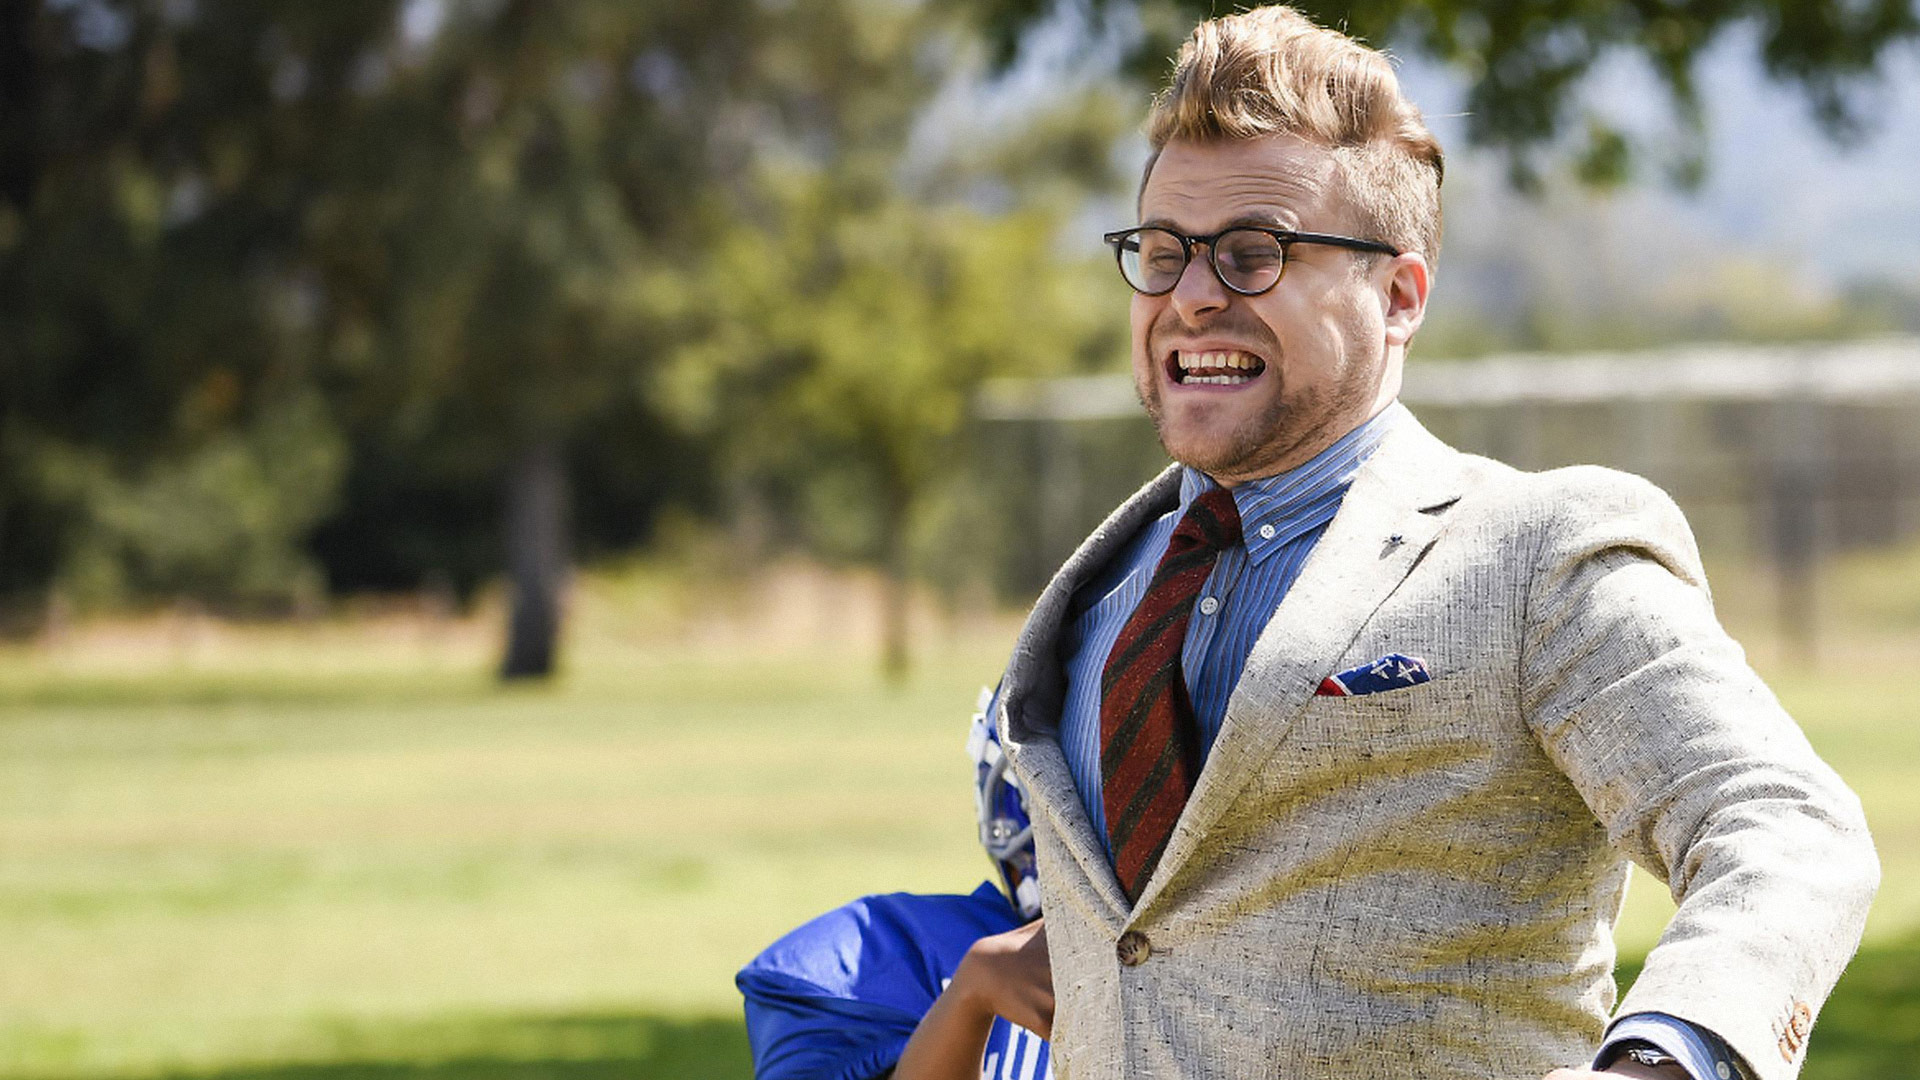 Amazoncom Watch Adam Ruins Everything Season 3 Prime Video 1920x1080